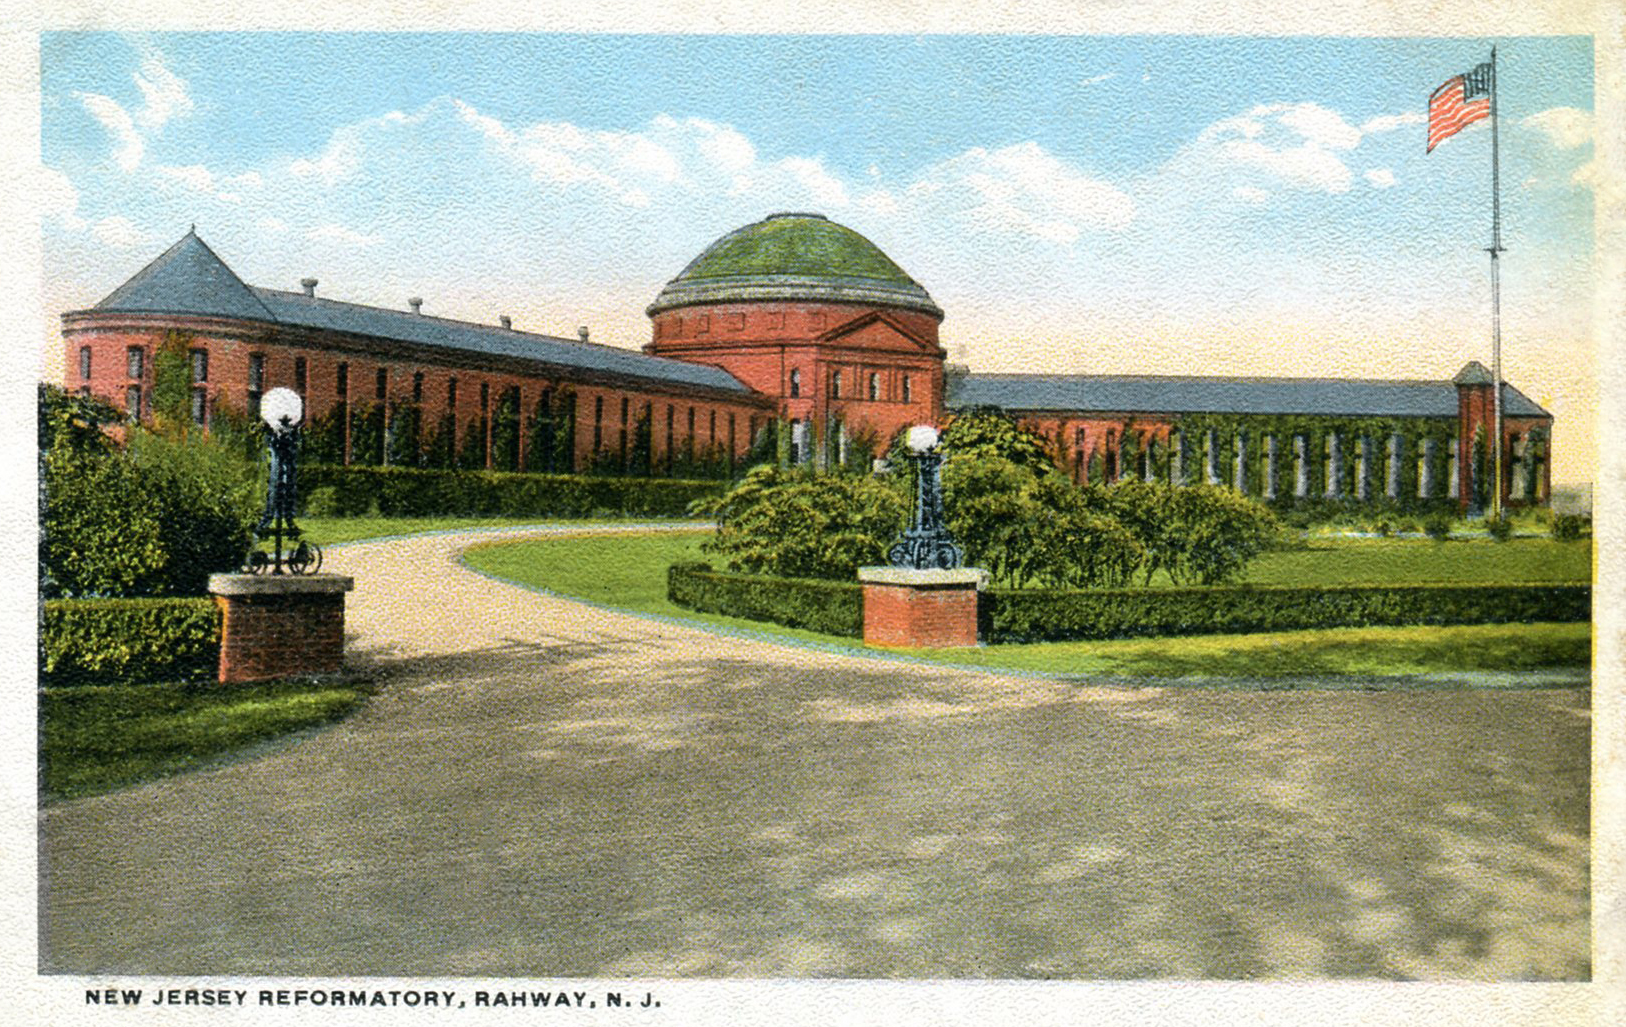 (above) Even early postcards such as this one (c. 1910) mistakenly lists the location of the New Jersey Reformatory as Rahway, N.J.